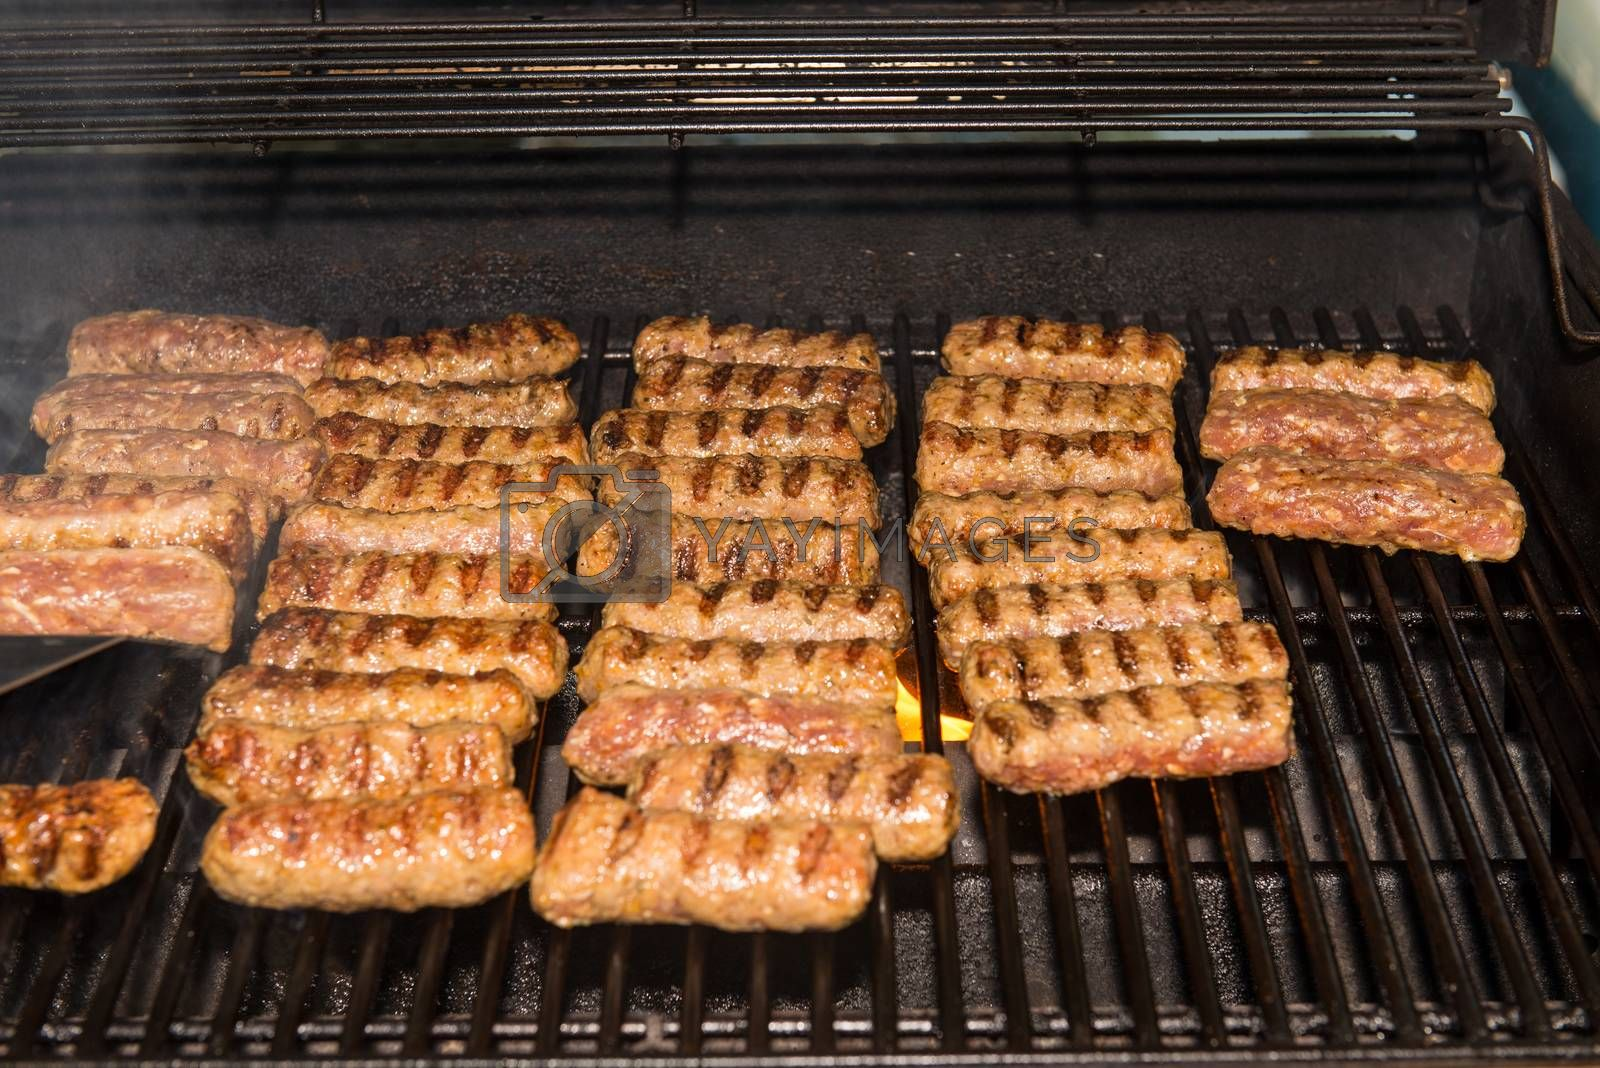 Meat rolls on the grill  by Dan Totilca